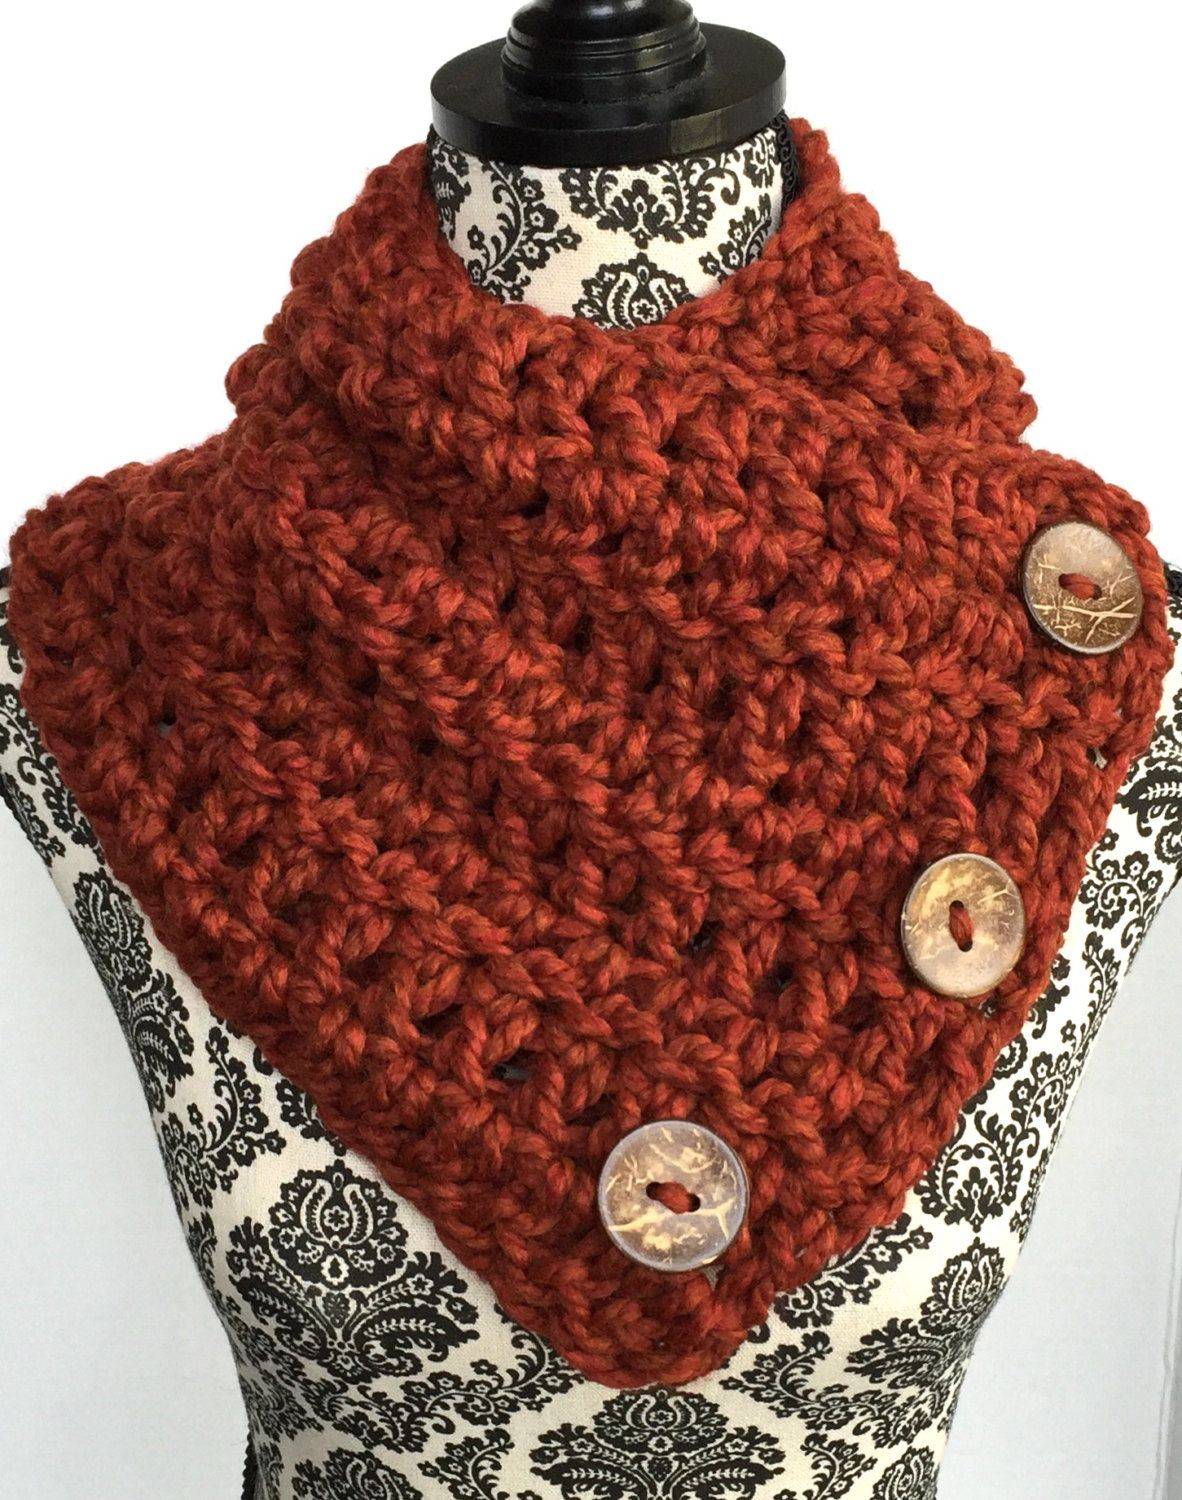 Boston Harbor Scarf in Rust - Shawls & Wraps - Shawls and Ponchos ...